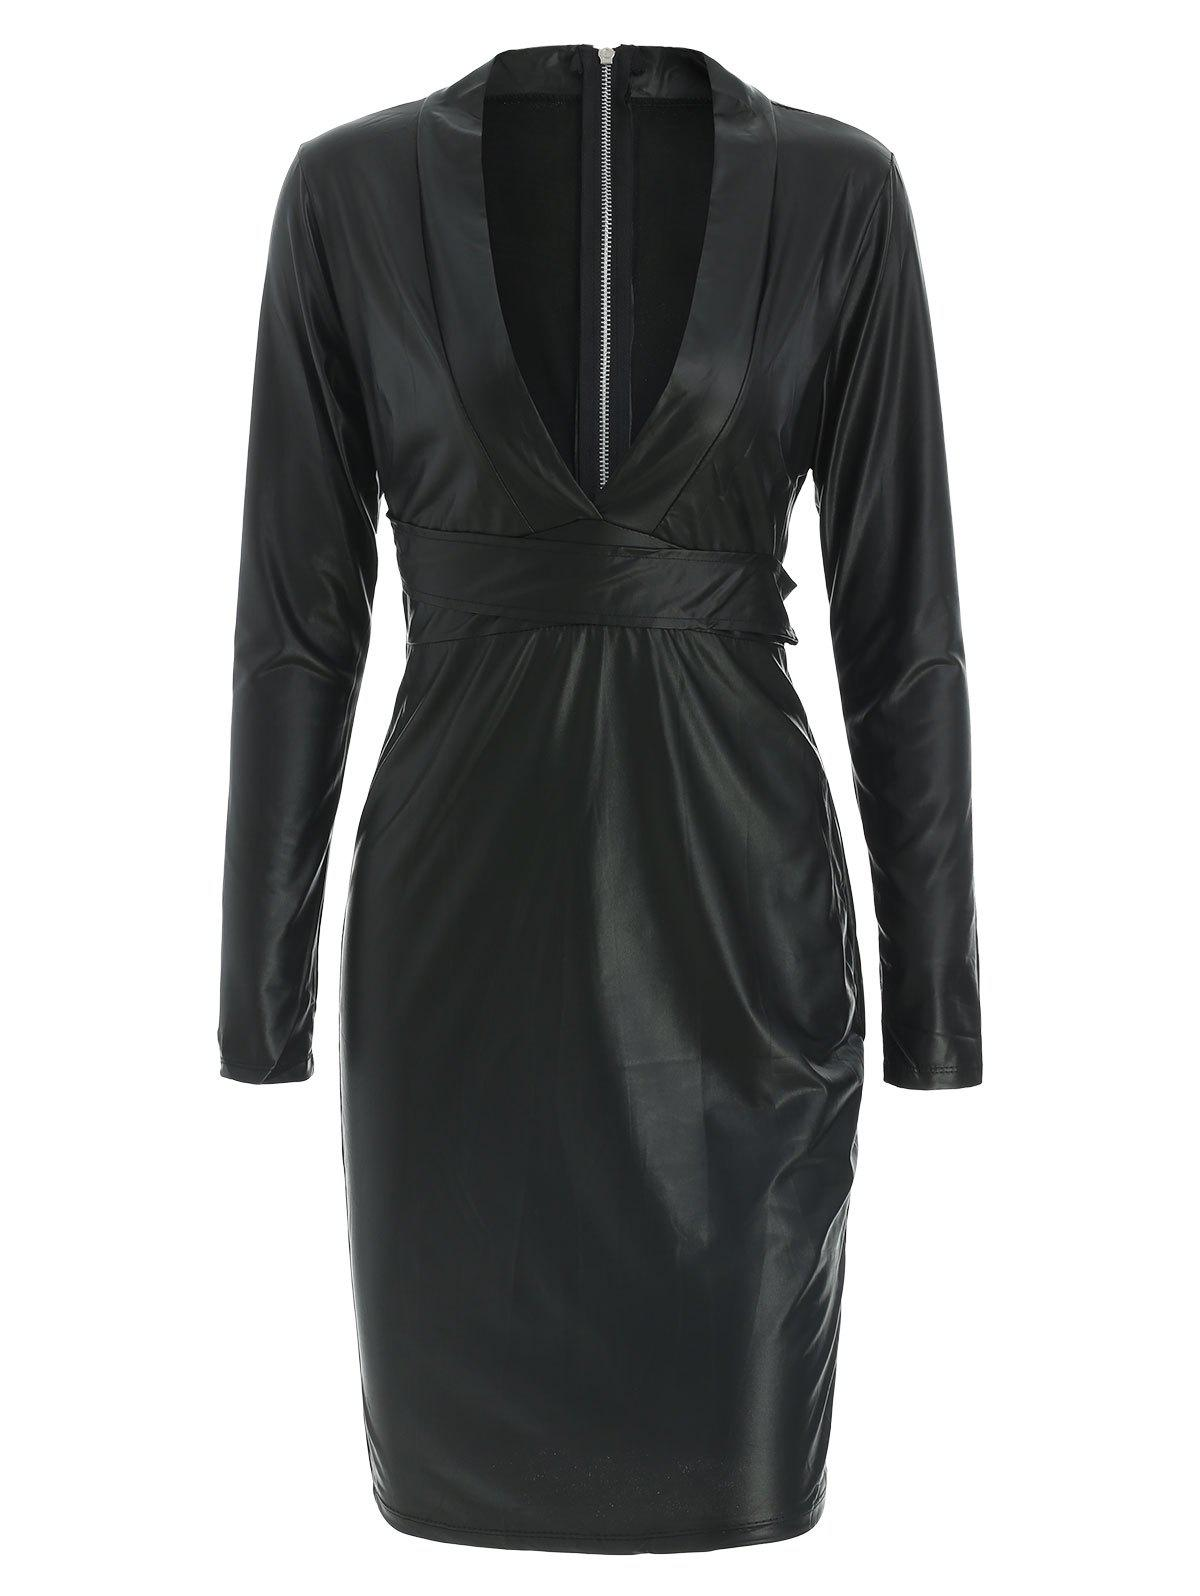 Sexy Style Plunging Neck Faux Leather Packet Buttock Long Sleeve Dress For Women - BLACK M